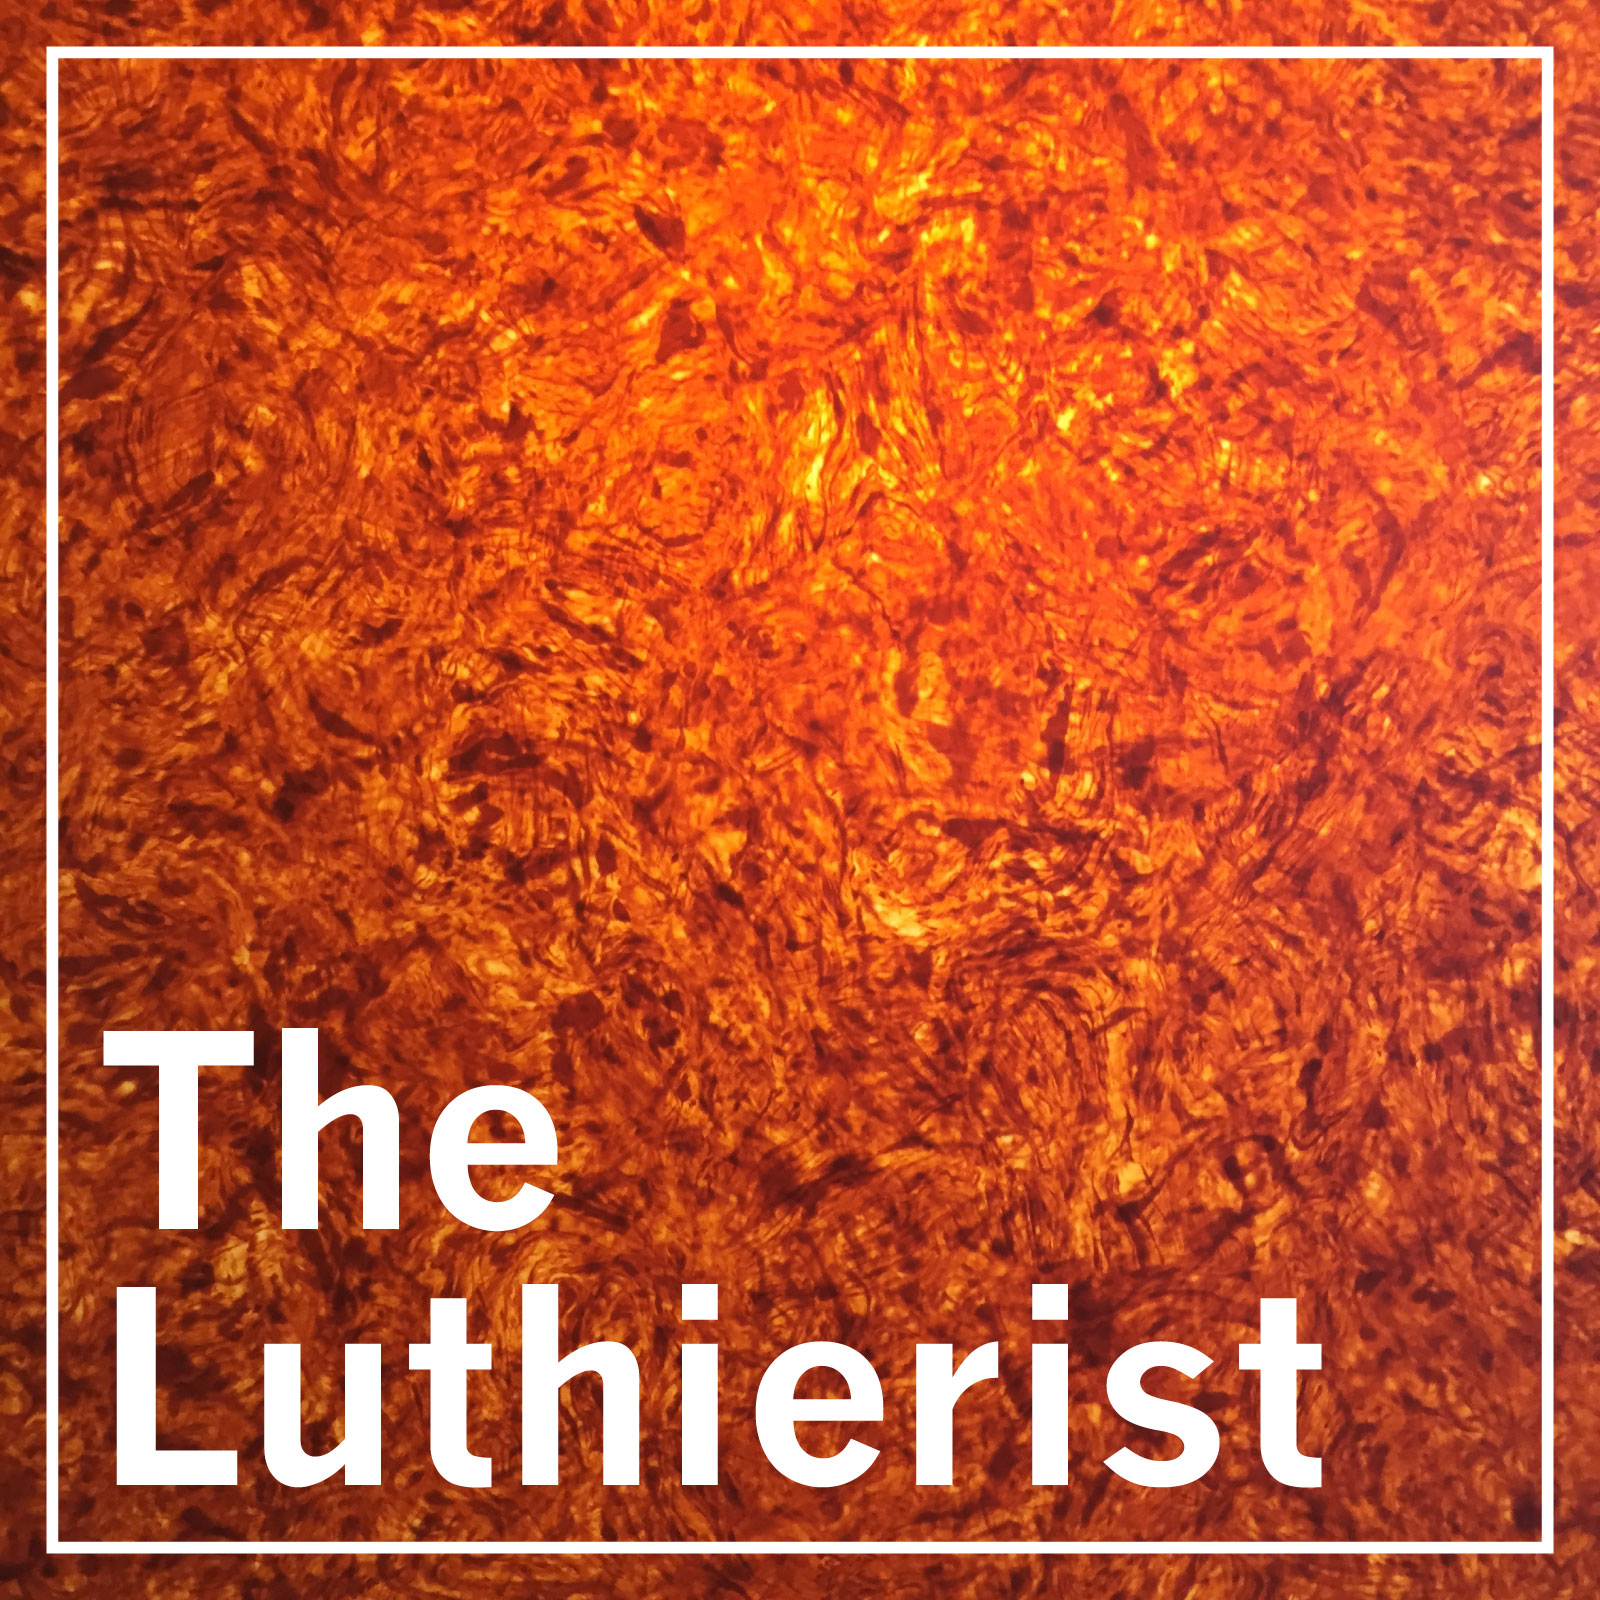 the luthierist podcast logo.jpg